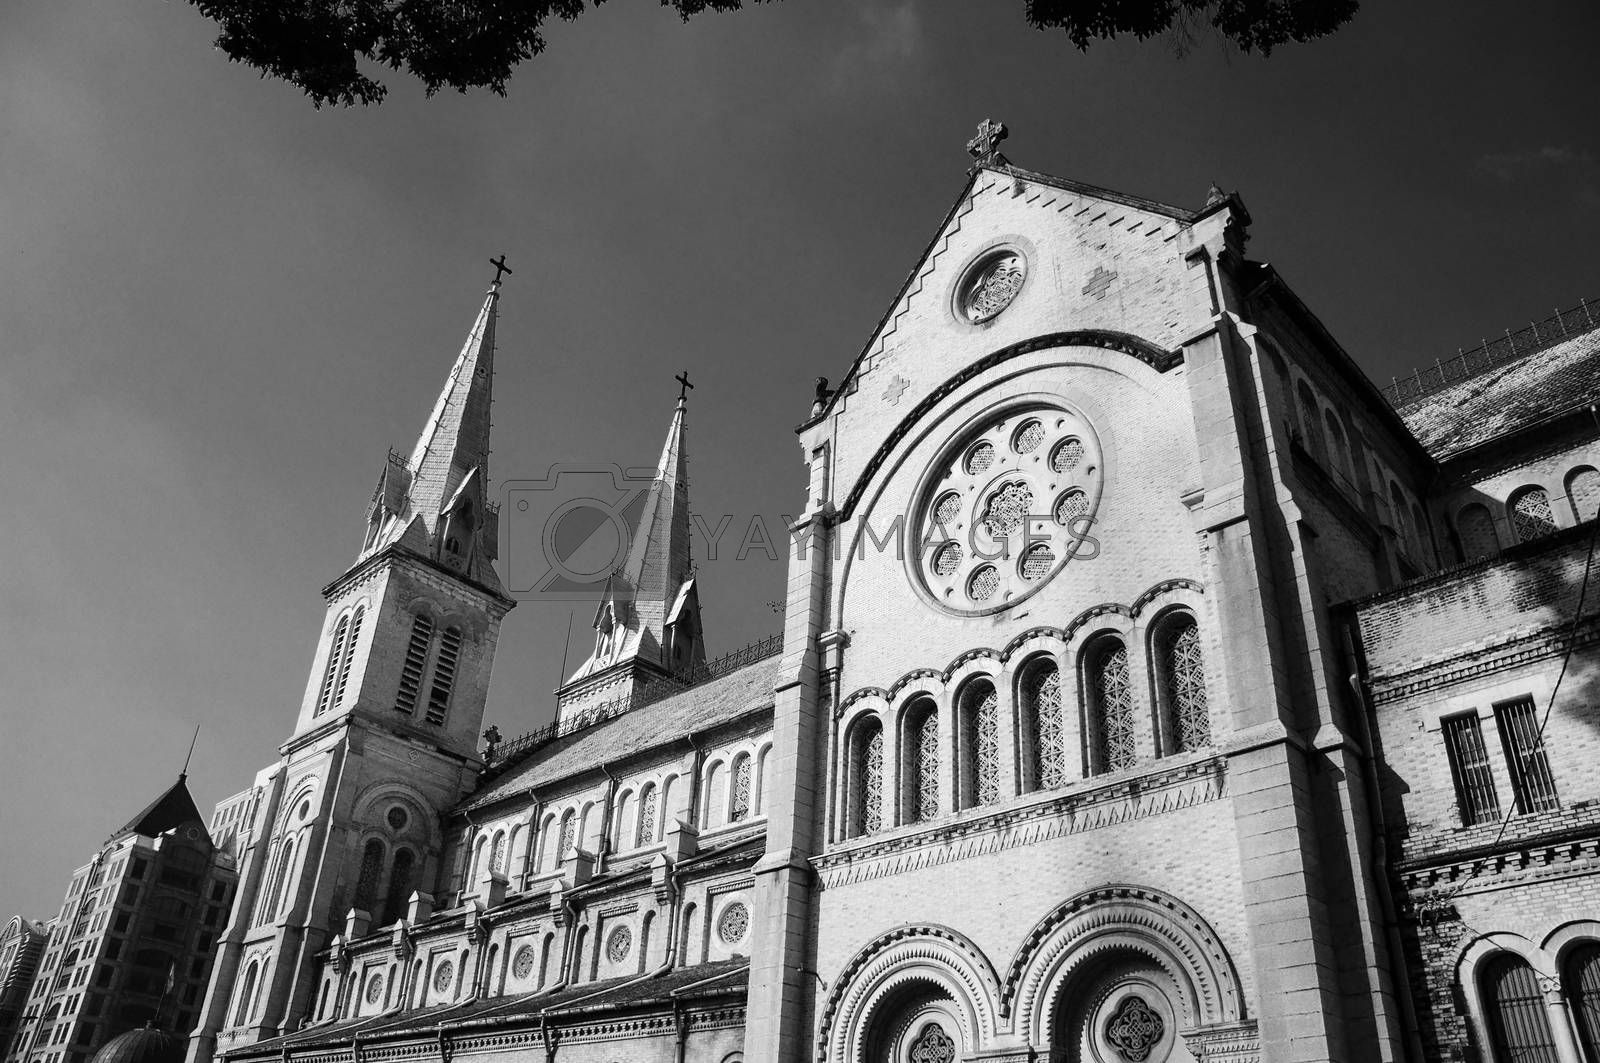 Abtract architecture of Duc Ba Cathedral by xuanhuongho